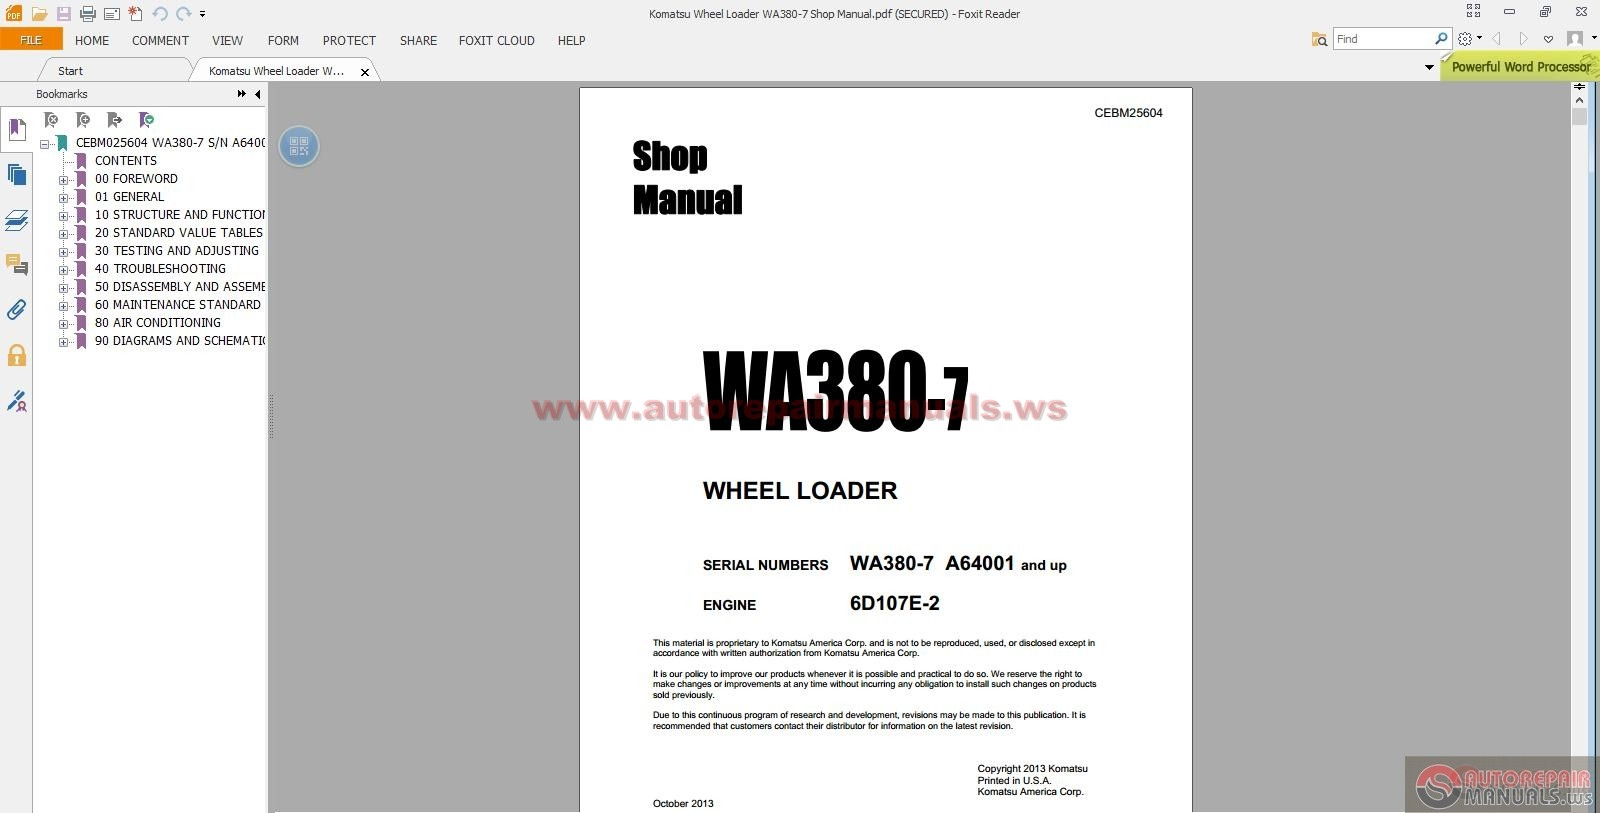 komatsu wheel loader wa380 7 shop manual auto repair. Black Bedroom Furniture Sets. Home Design Ideas